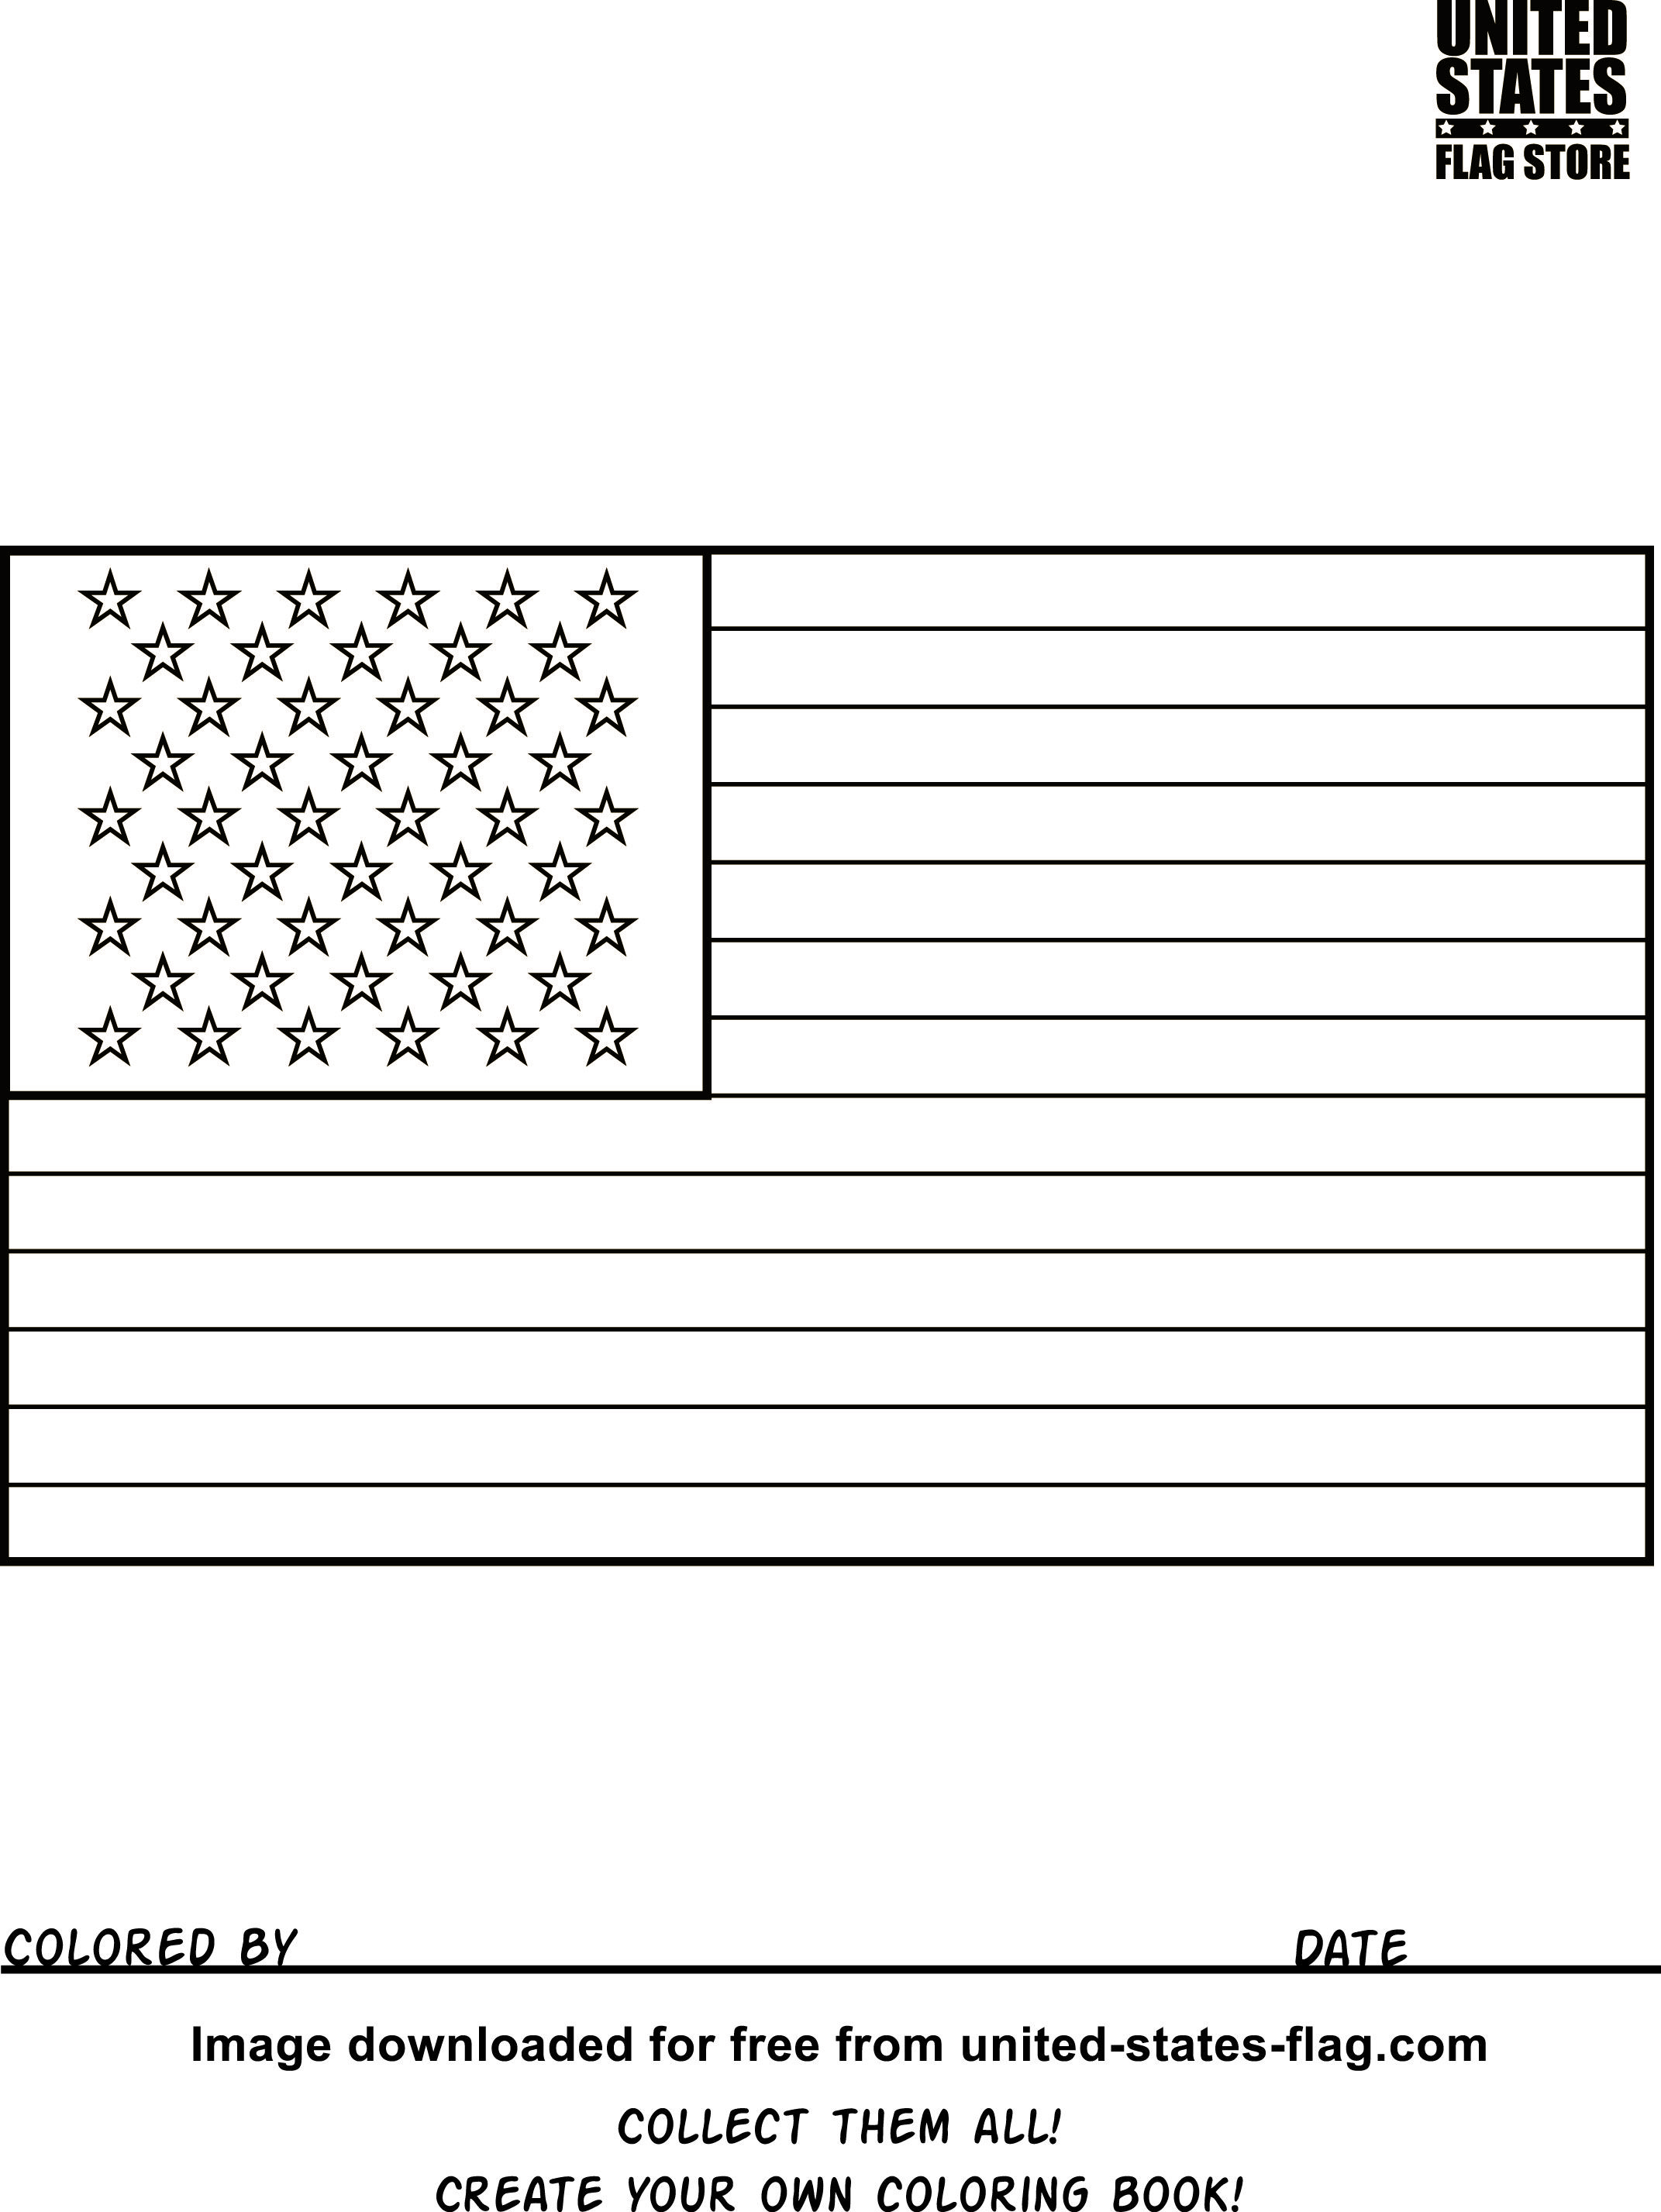 Wonderful Us Flag Coloring Page Free American Pages Flag Coloring Pages American Flag Coloring Page Coloring Pages Inspirational